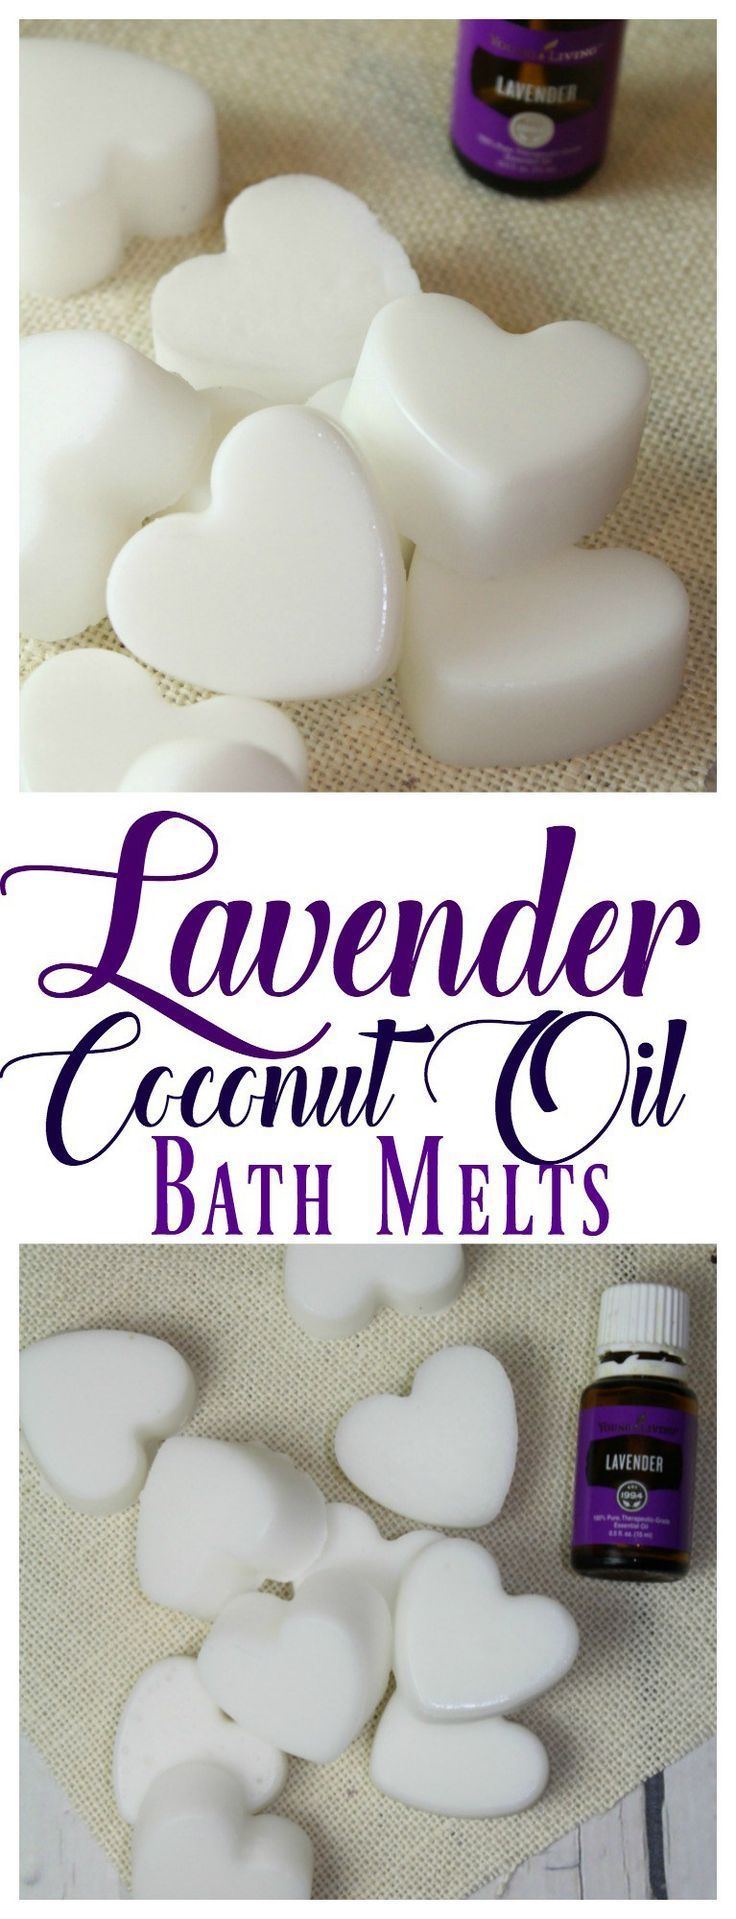 These Lavender Coconut Oil Bath Melts are an easy, and inexpensive way to moisturize dry skin.